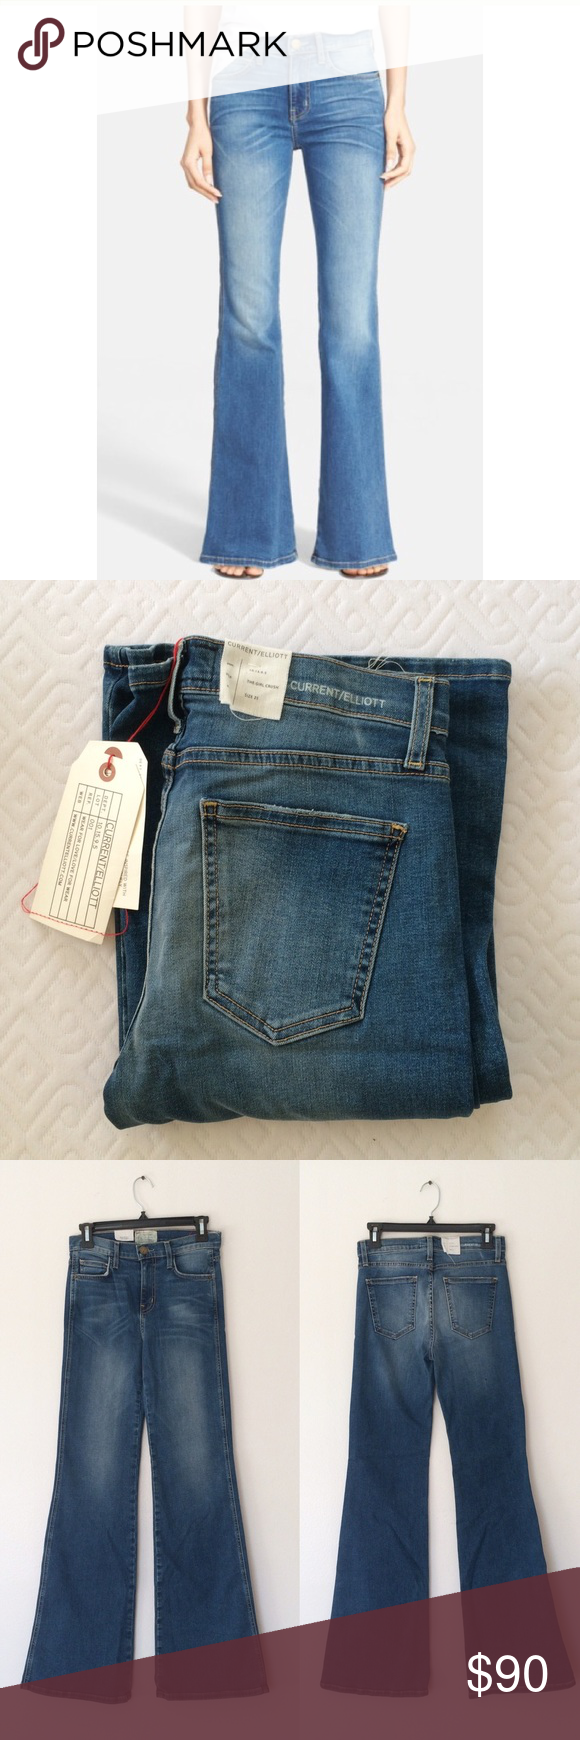 """Current/Elliott The Girl Crush Flare Jean Super trendy and perfect for fall! Zip fly with button closure. 5 pocket construction. Color dustbowl. Brand new with tag.  - Approx. 10"""" rise, 33"""" inseam Current/Elliott Jeans Flare & Wide Leg"""